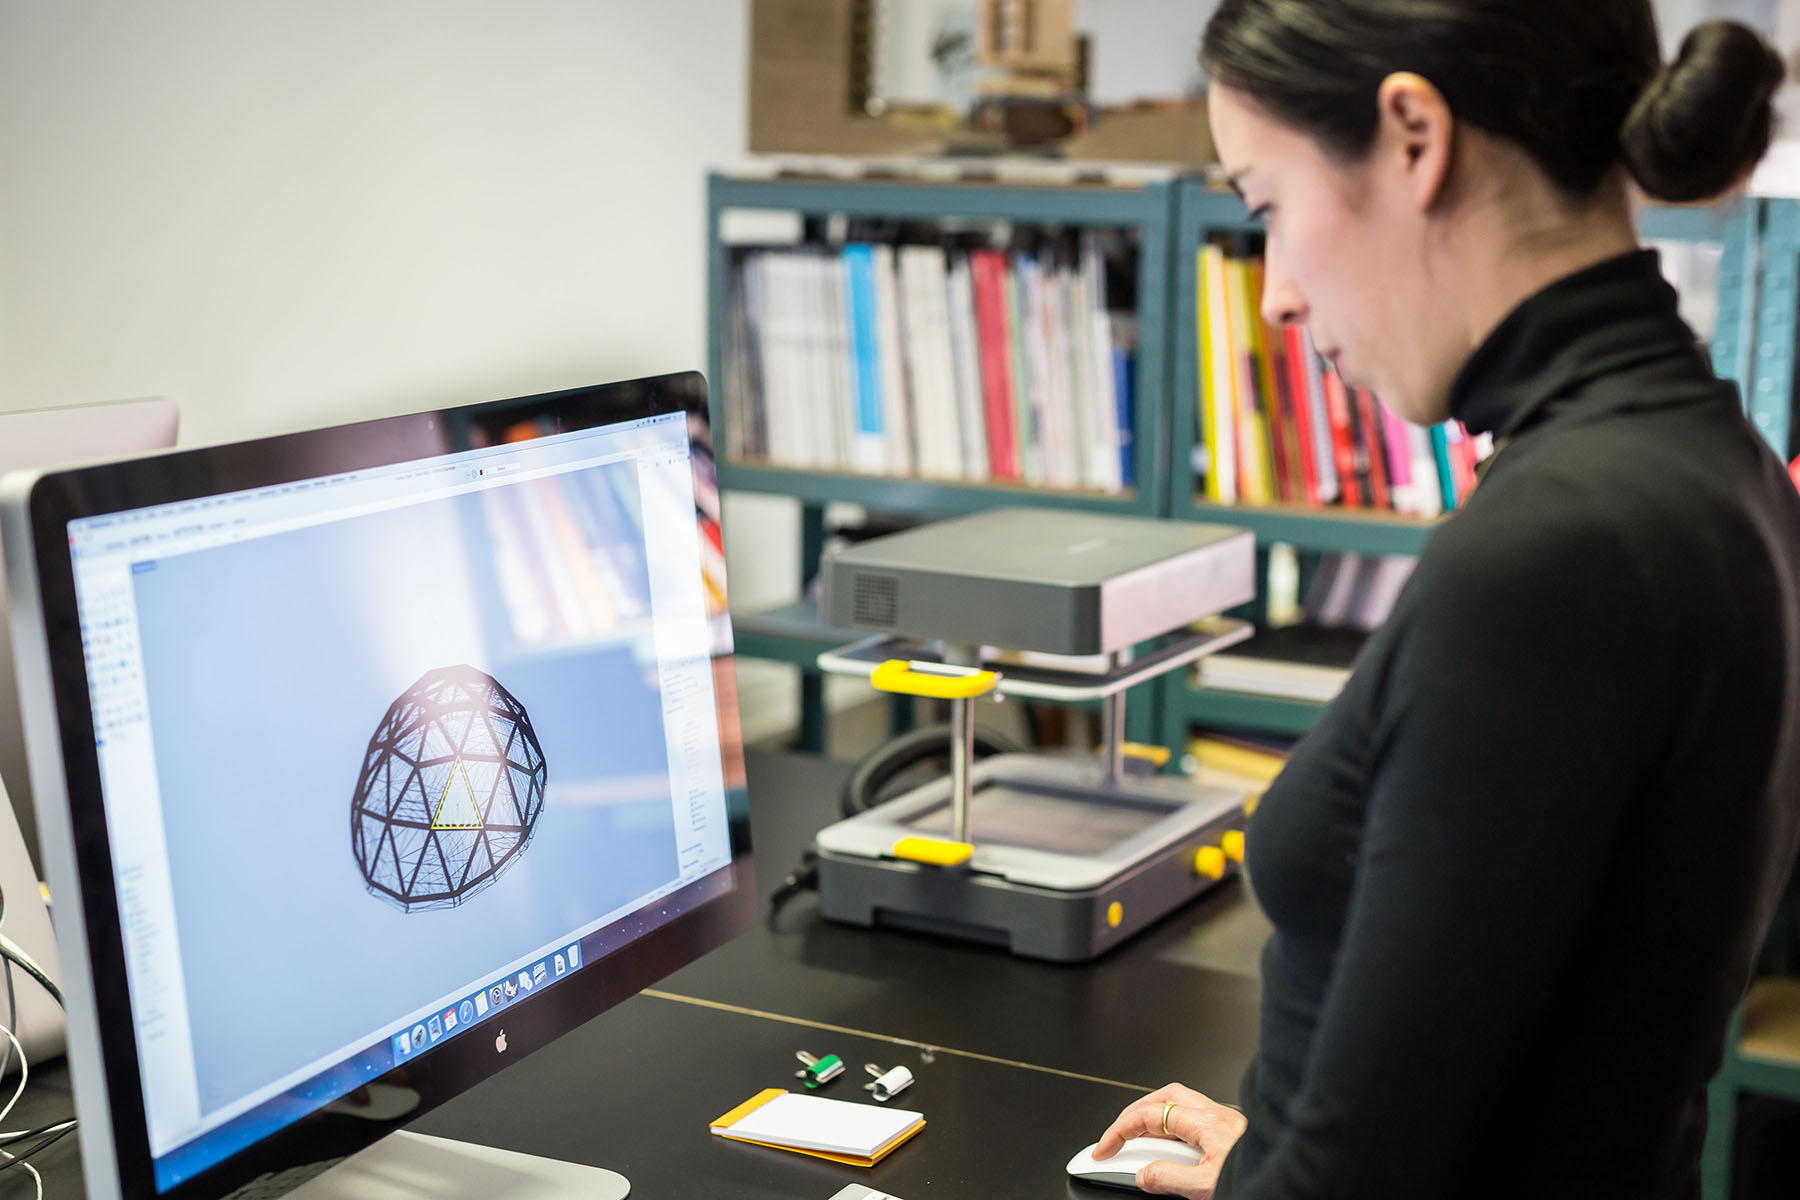 Building architecture models using 3D printing and vacuum forming machine